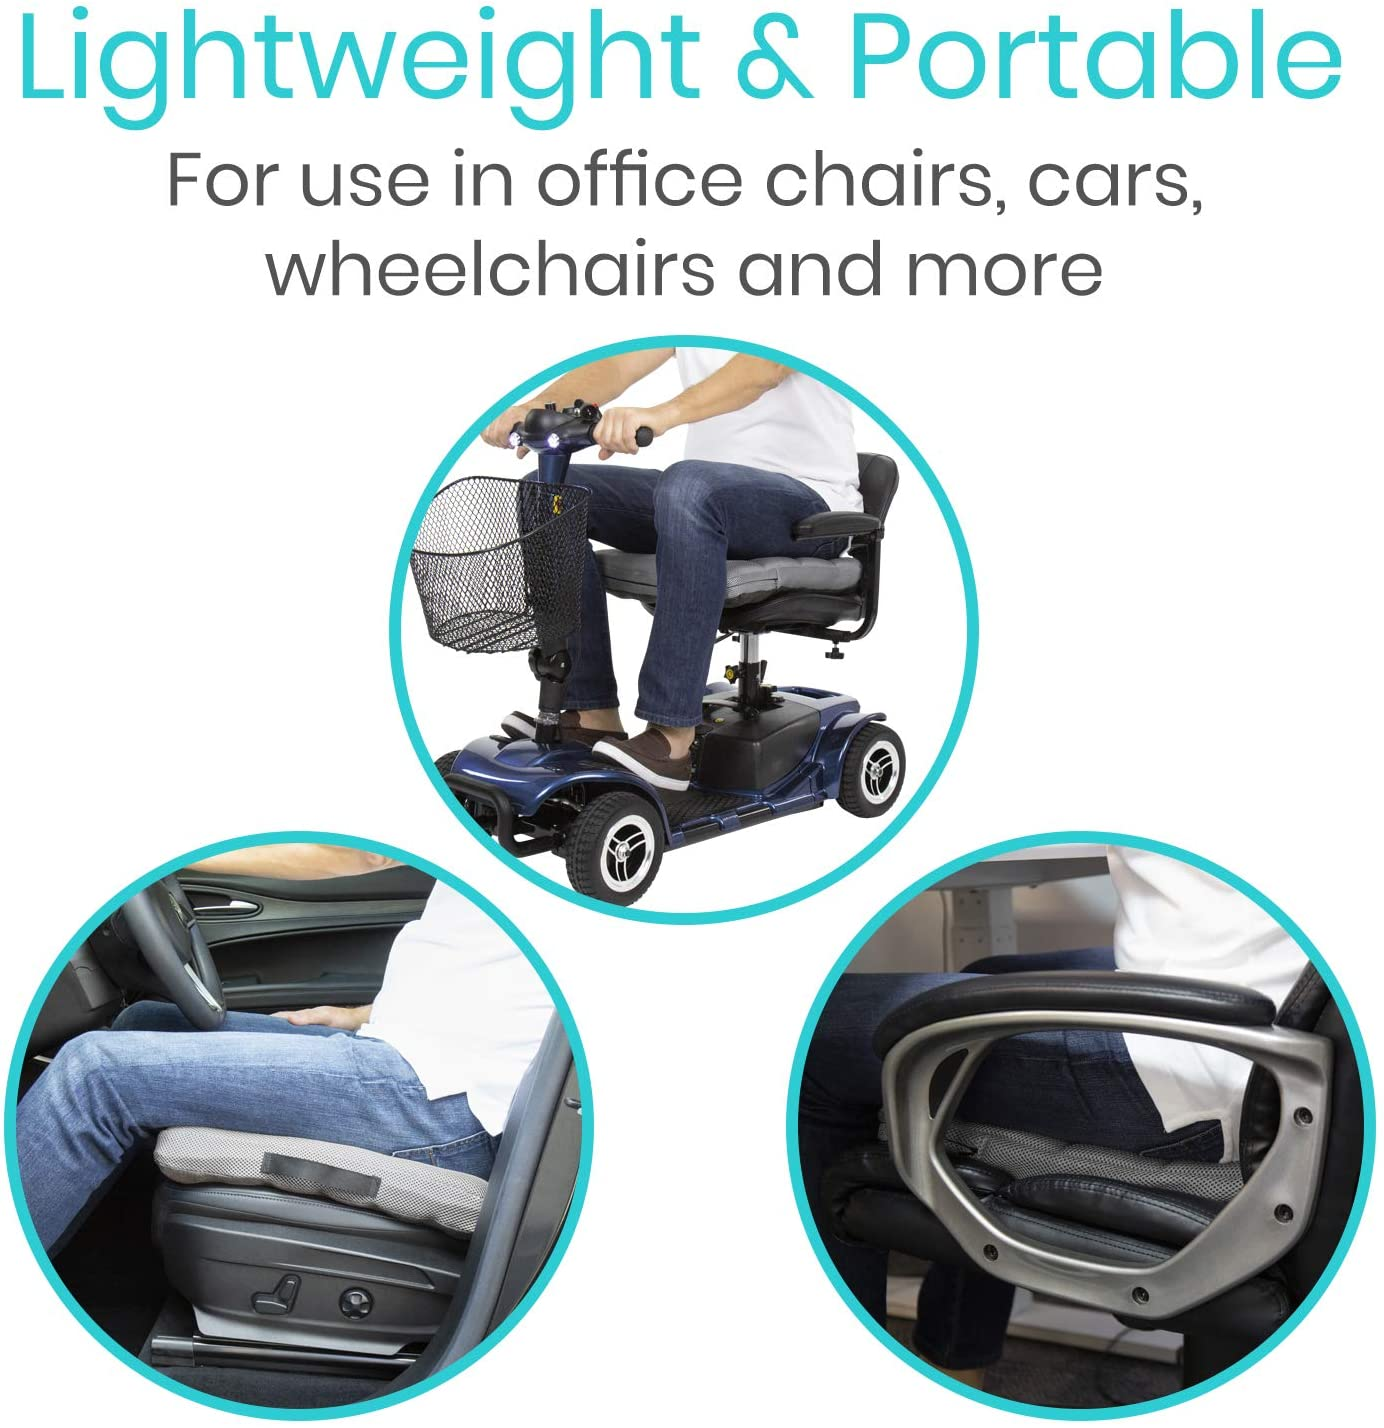 Coccyx Pain Office Chair Orthopedic Seating for Car Wheelchair Sciatica Soft or Firm Back Support Air Pad for Tailbone Portable and Inflatable Vive Pressure Relief Seat Cushion Travel